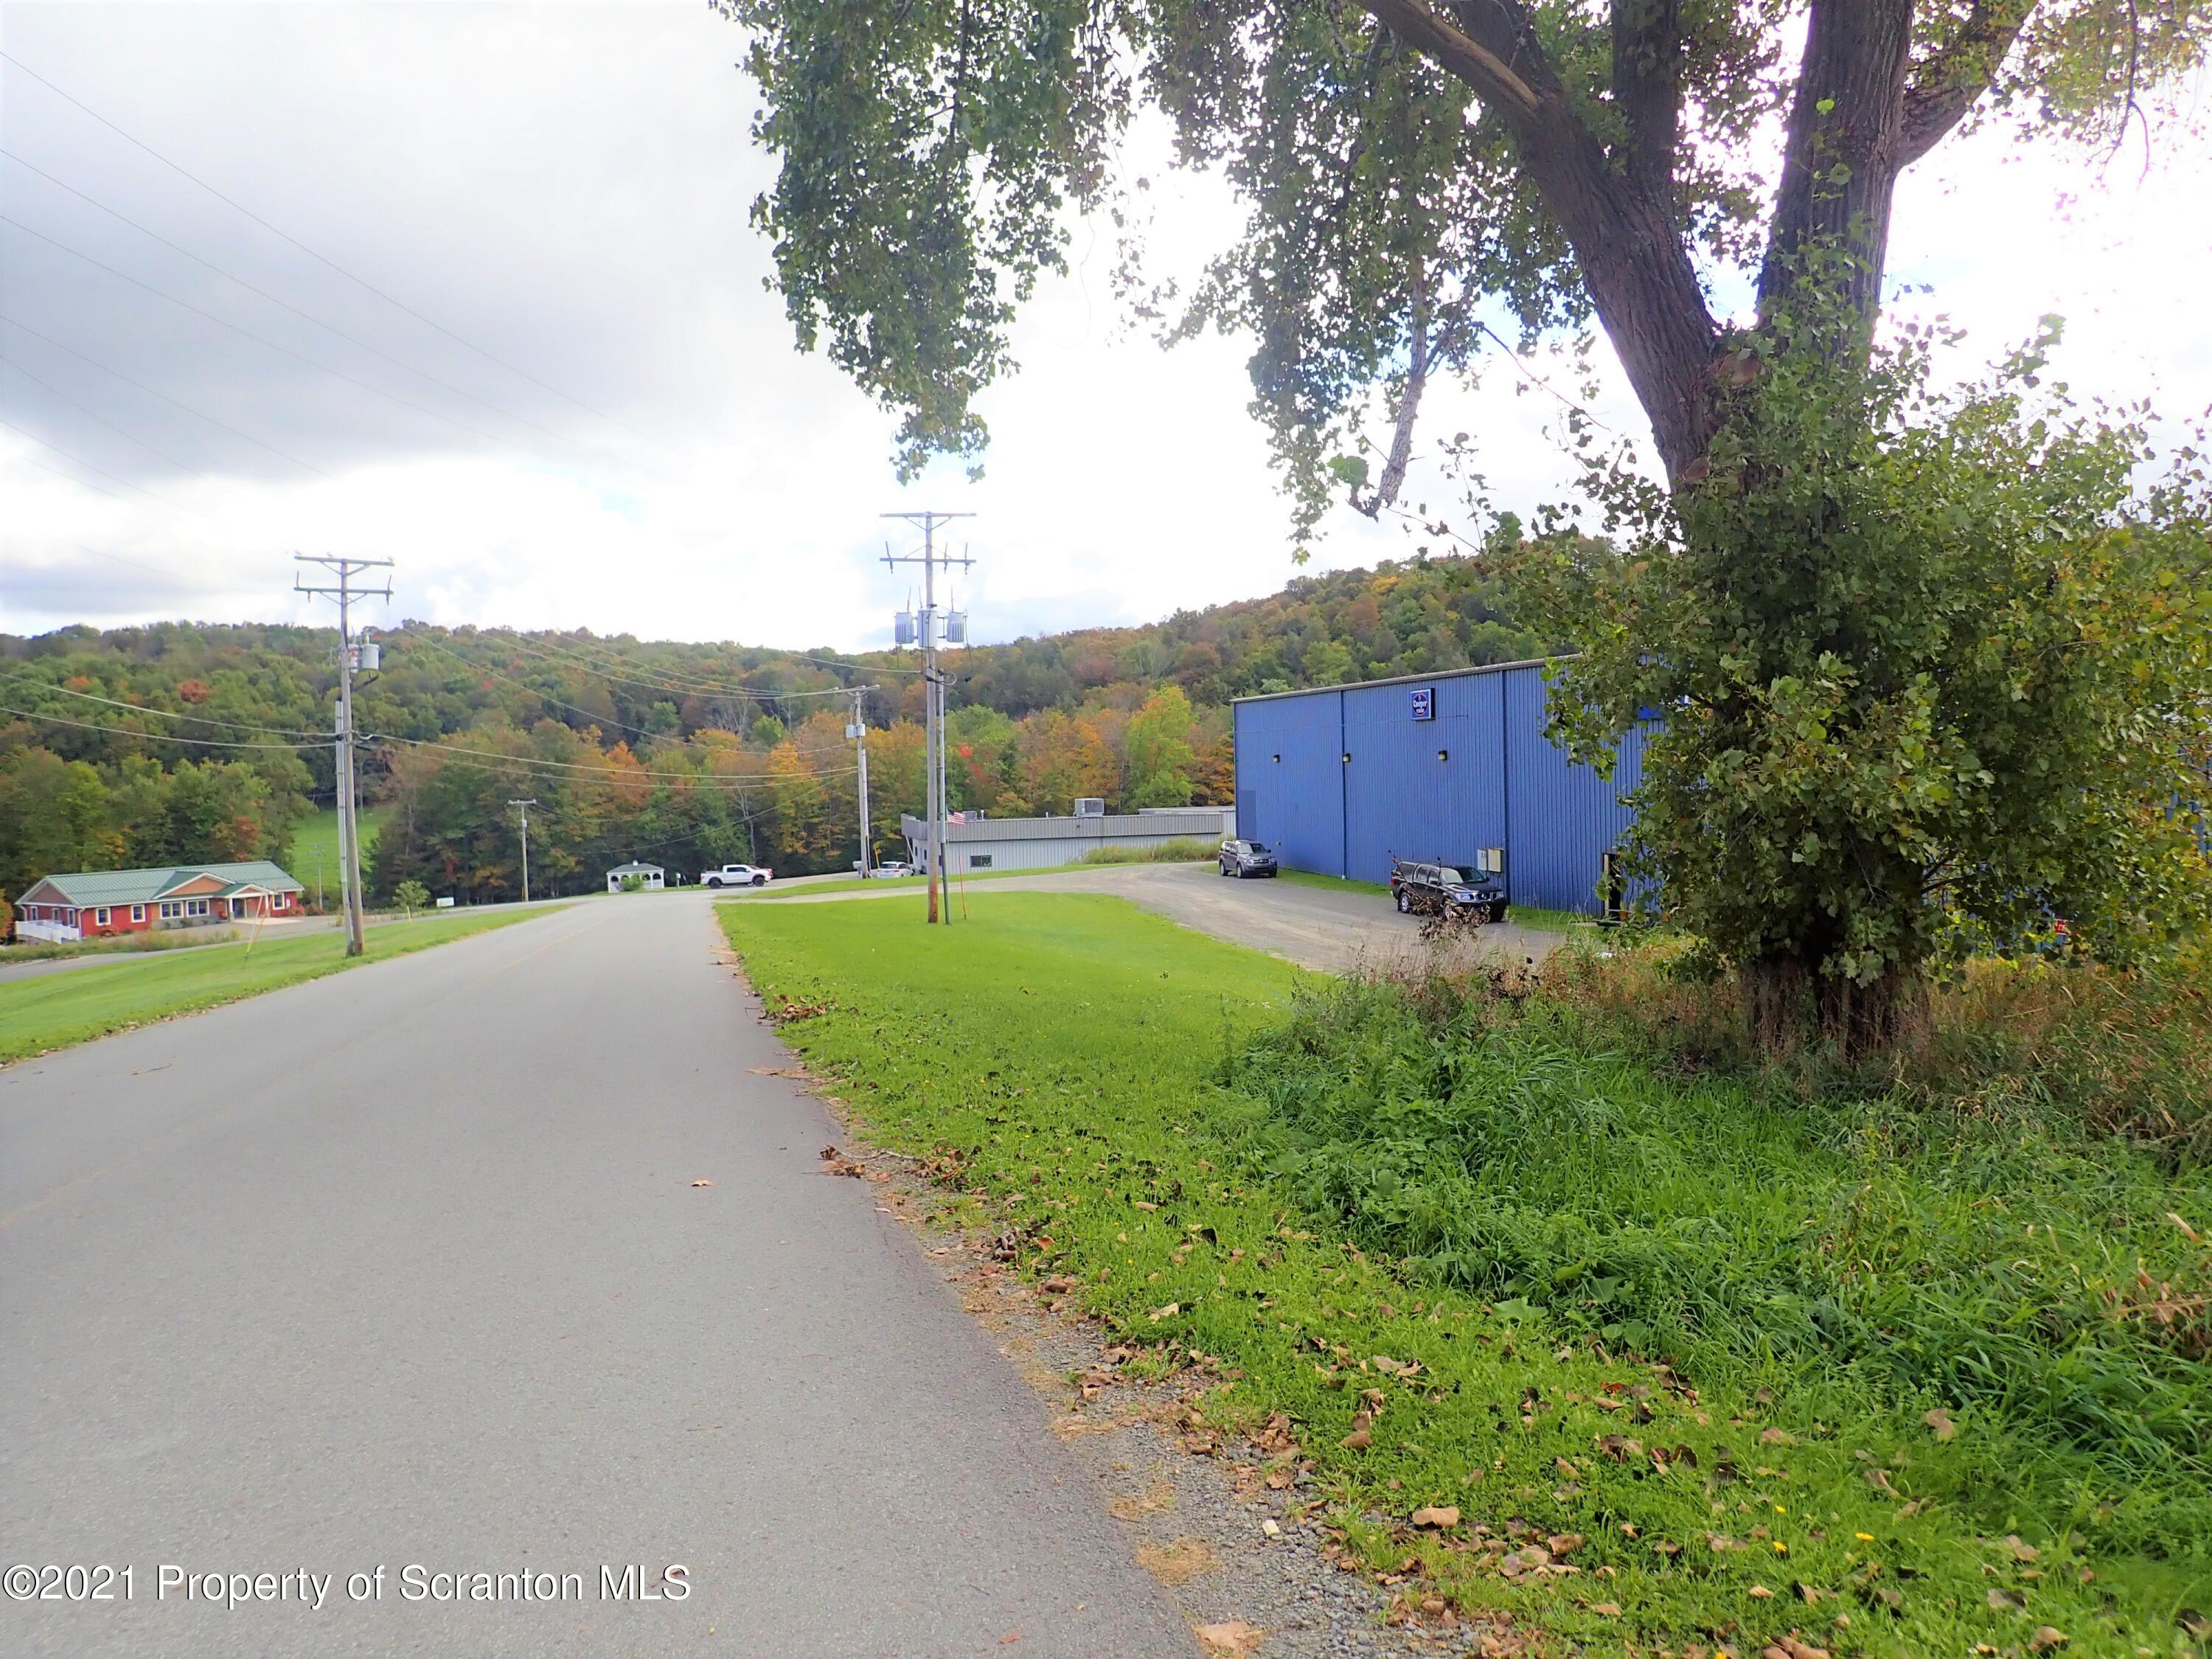 Township road access